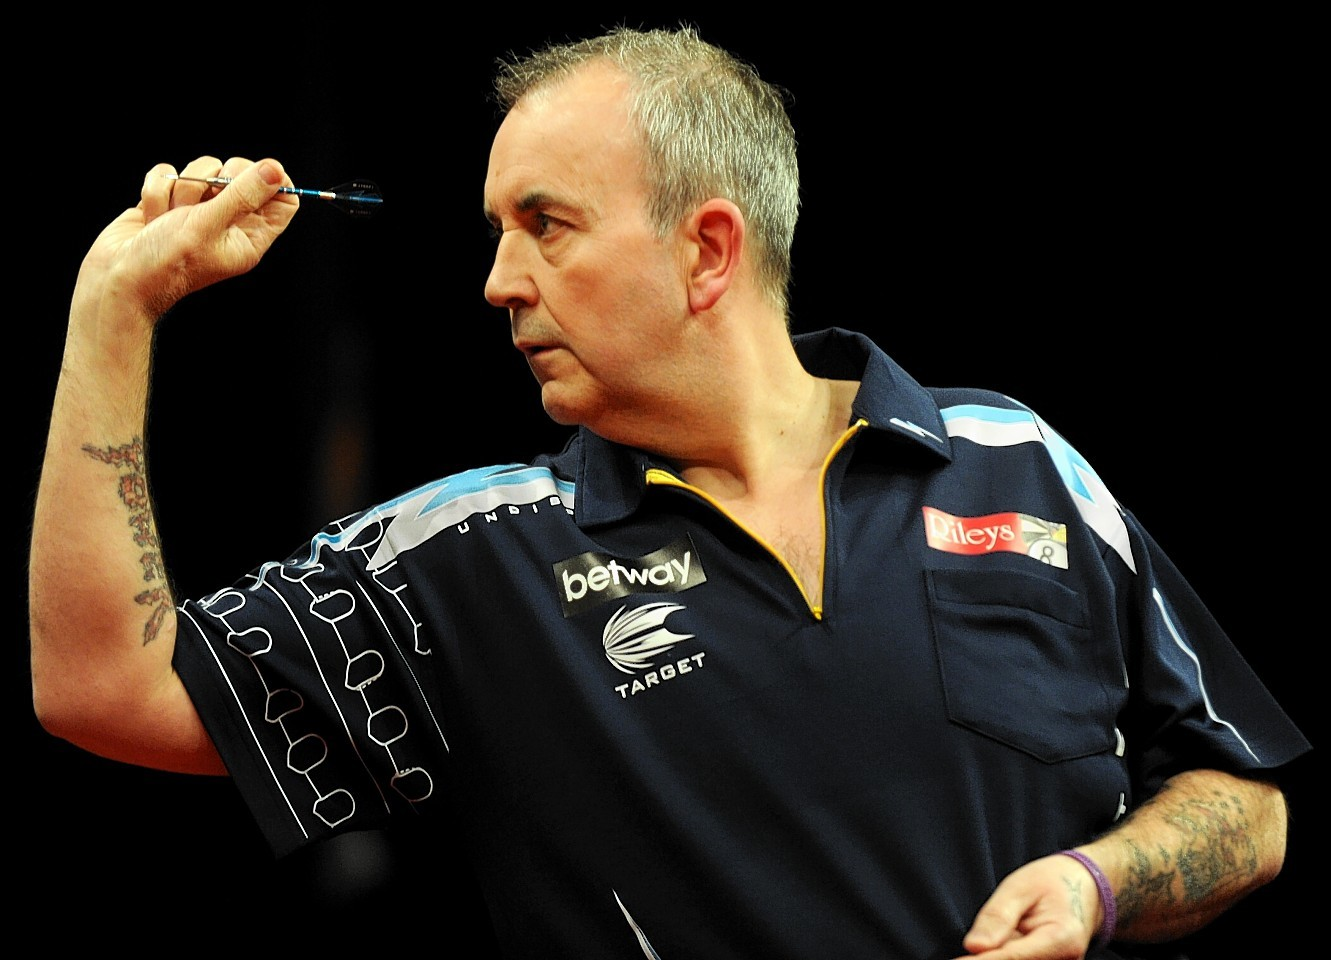 Phil Taylor starred in Aberdeen when the Premier League Darts visited in April this year